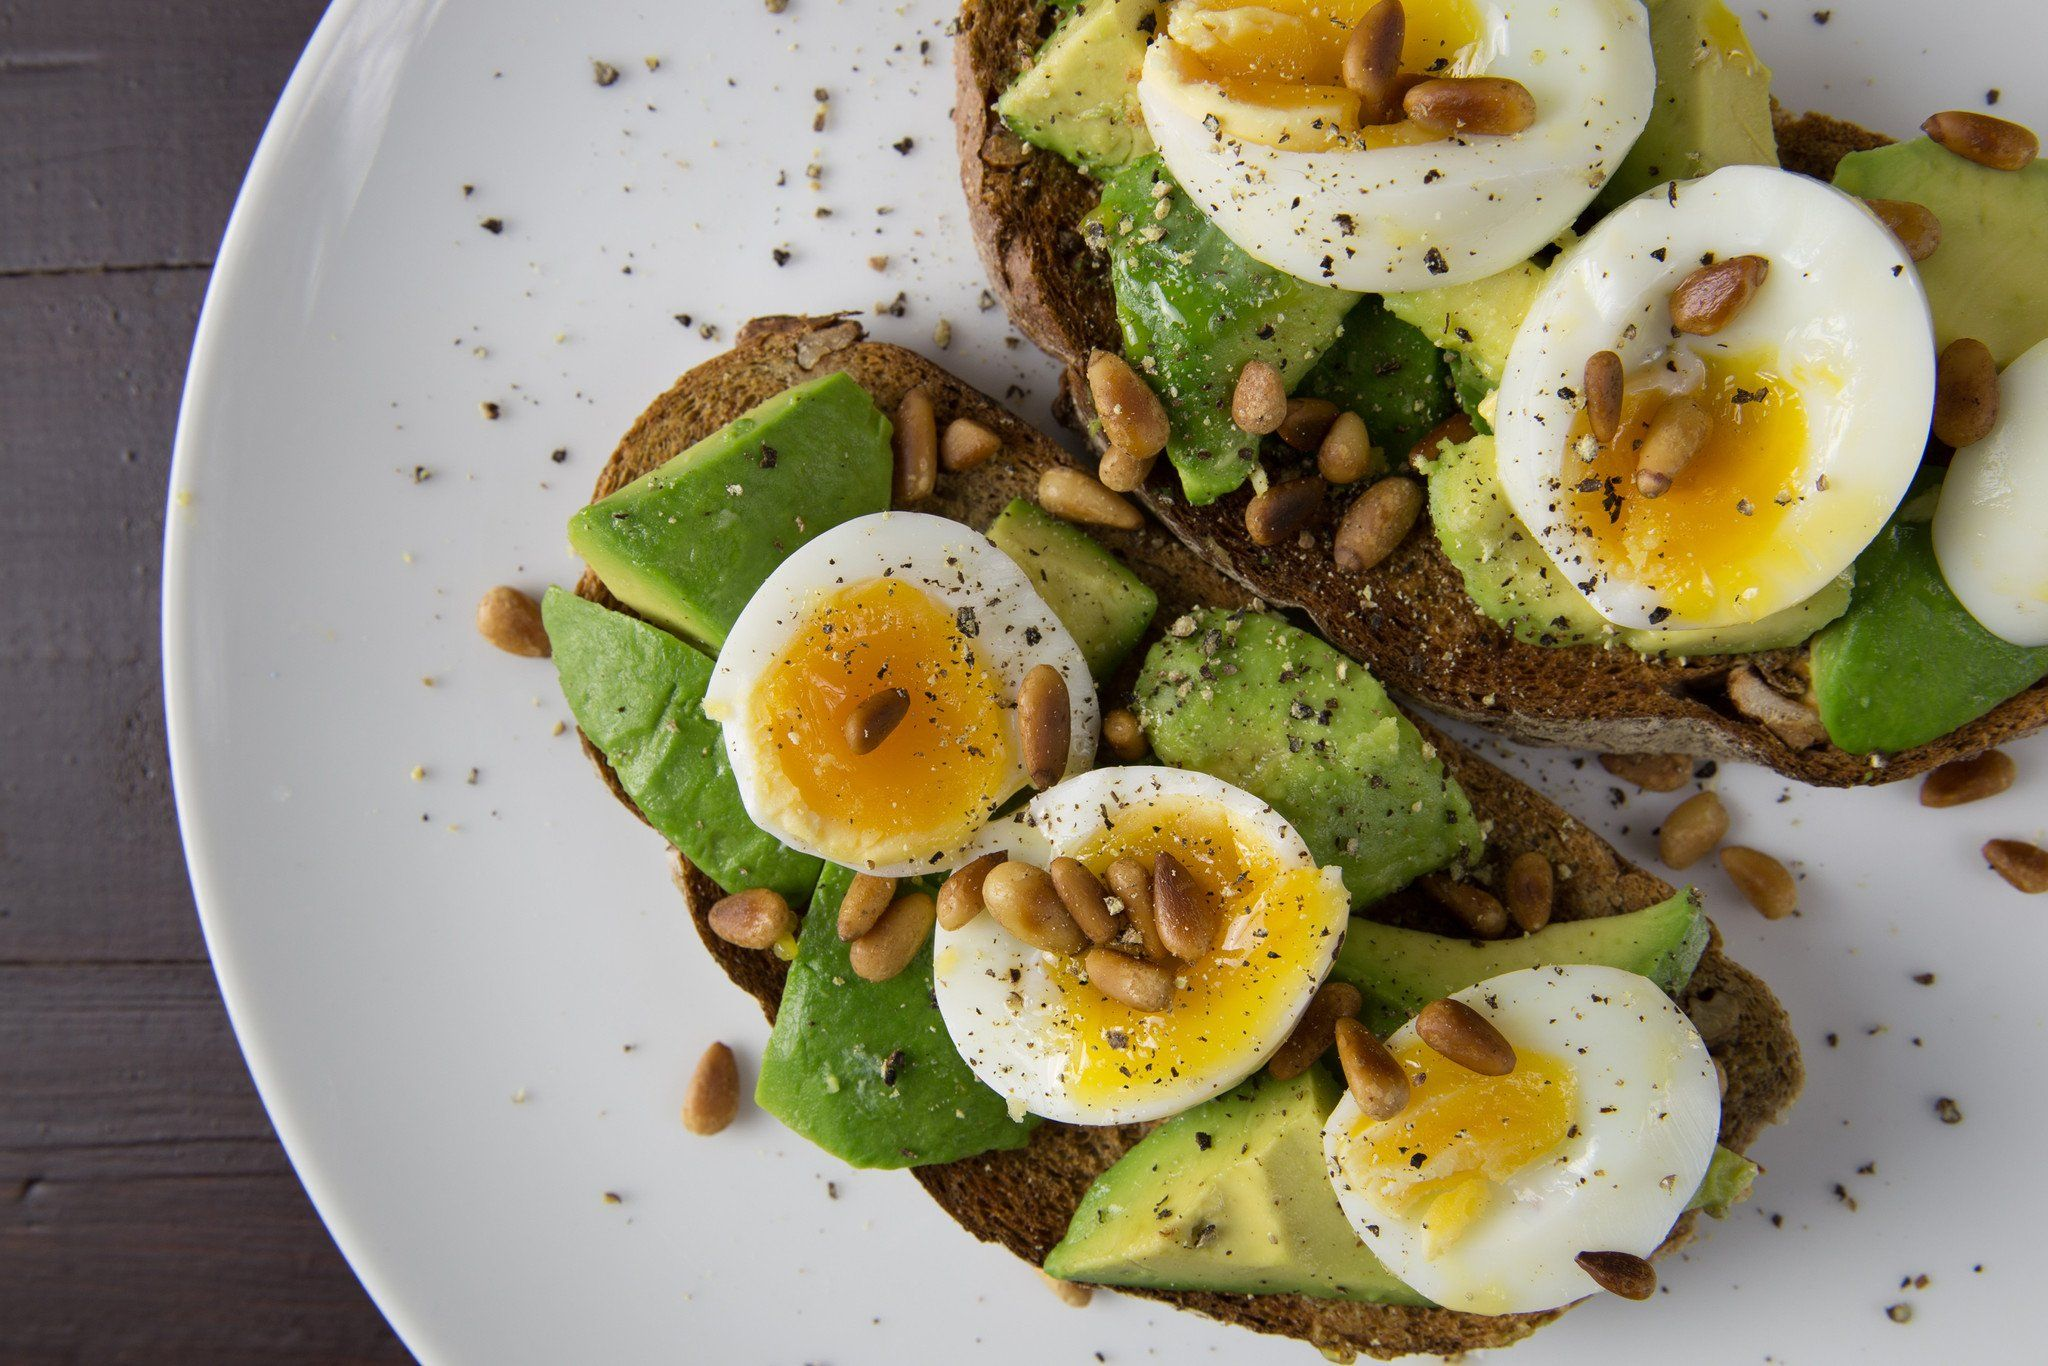 Avocado, Eggs & Toast This is definitely my favourite go-to recipe. Avocado, eggs and toast combo w